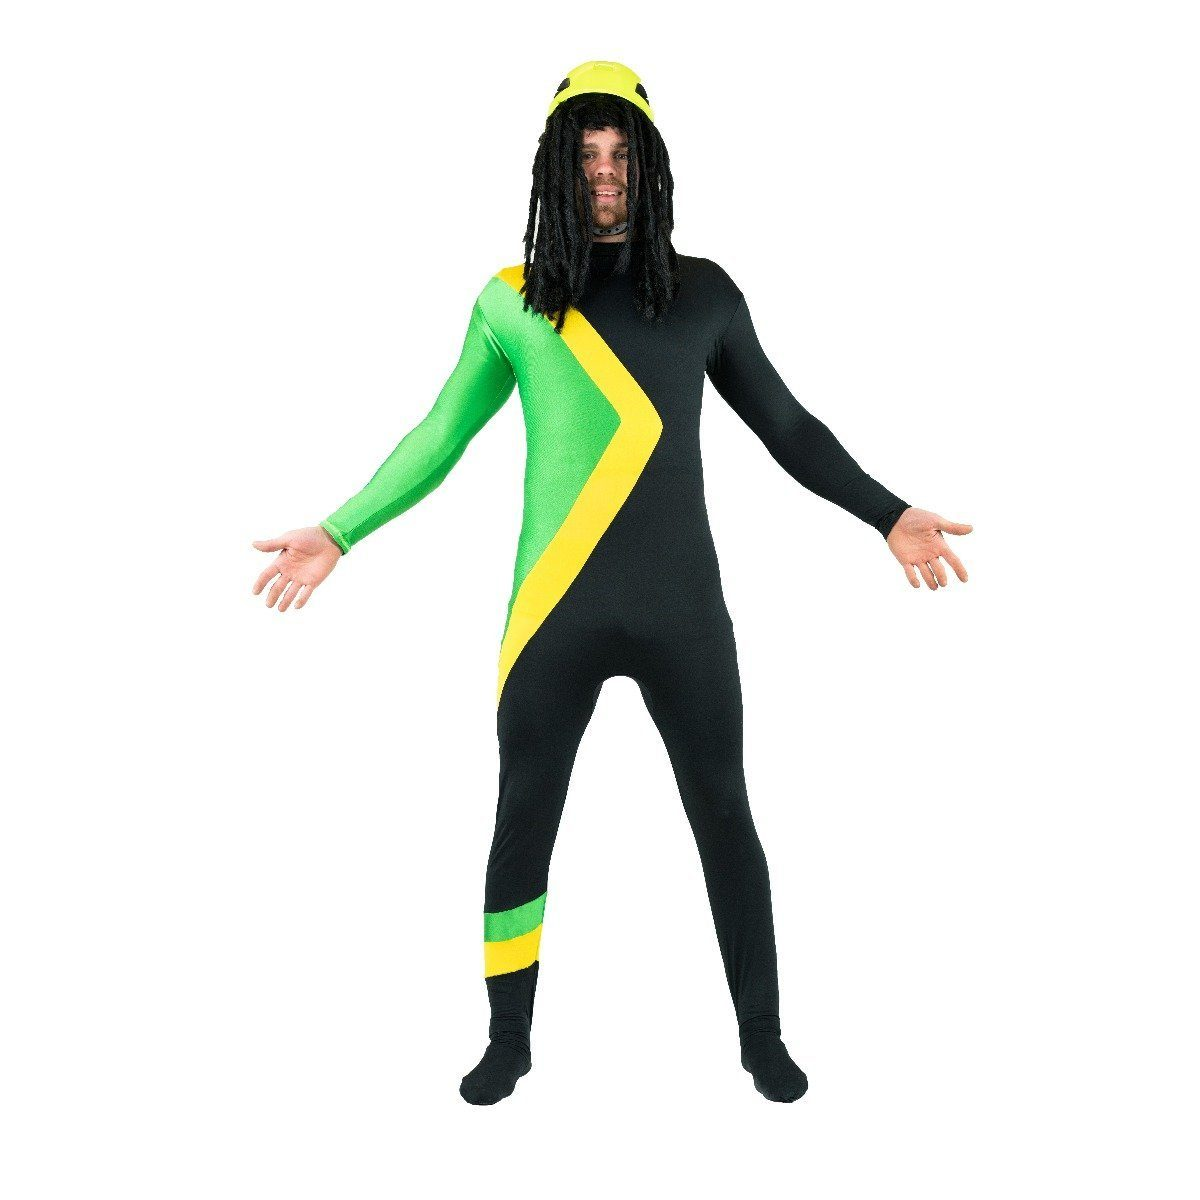 ebe54622f59 Cool Runnings Costume